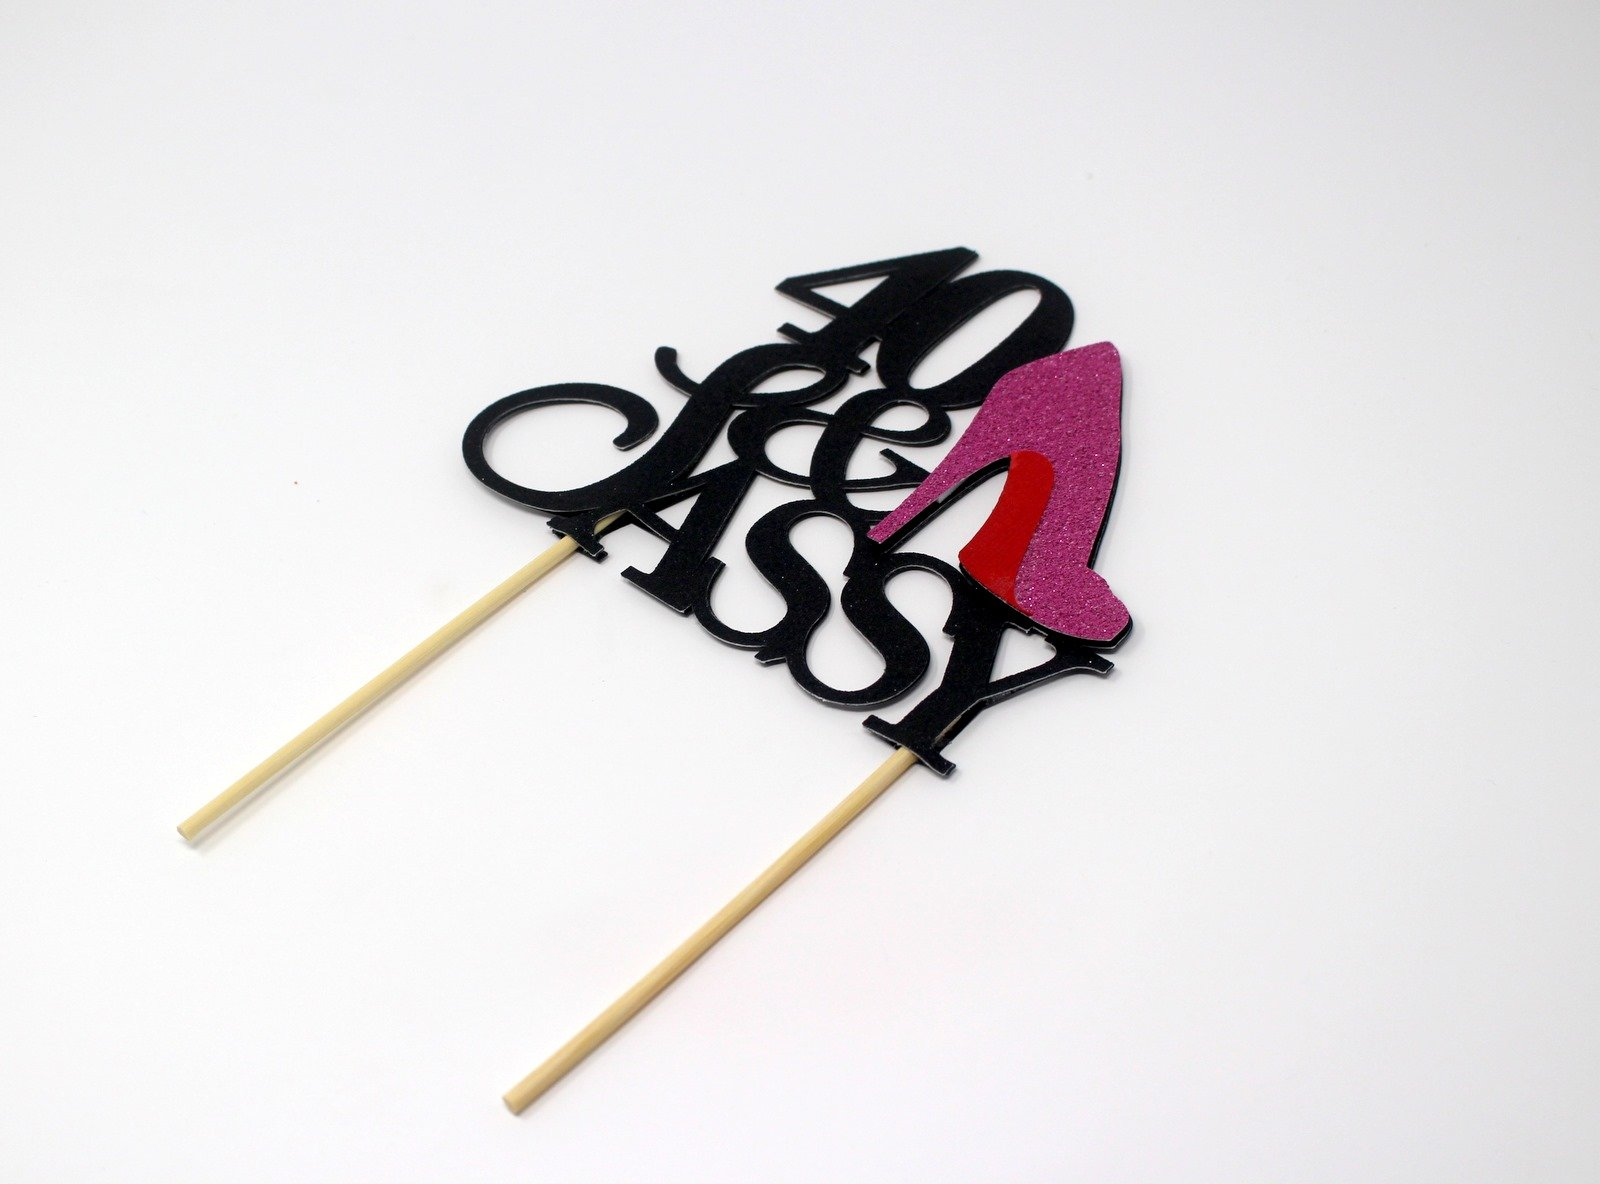 All About Details CAT40SABPI 40 and Sassy Cake Topper (Black and Pink), 6in Wide and 5in Tall with 2-pcs of 4in Wood skewers. by All About Details (Image #2)